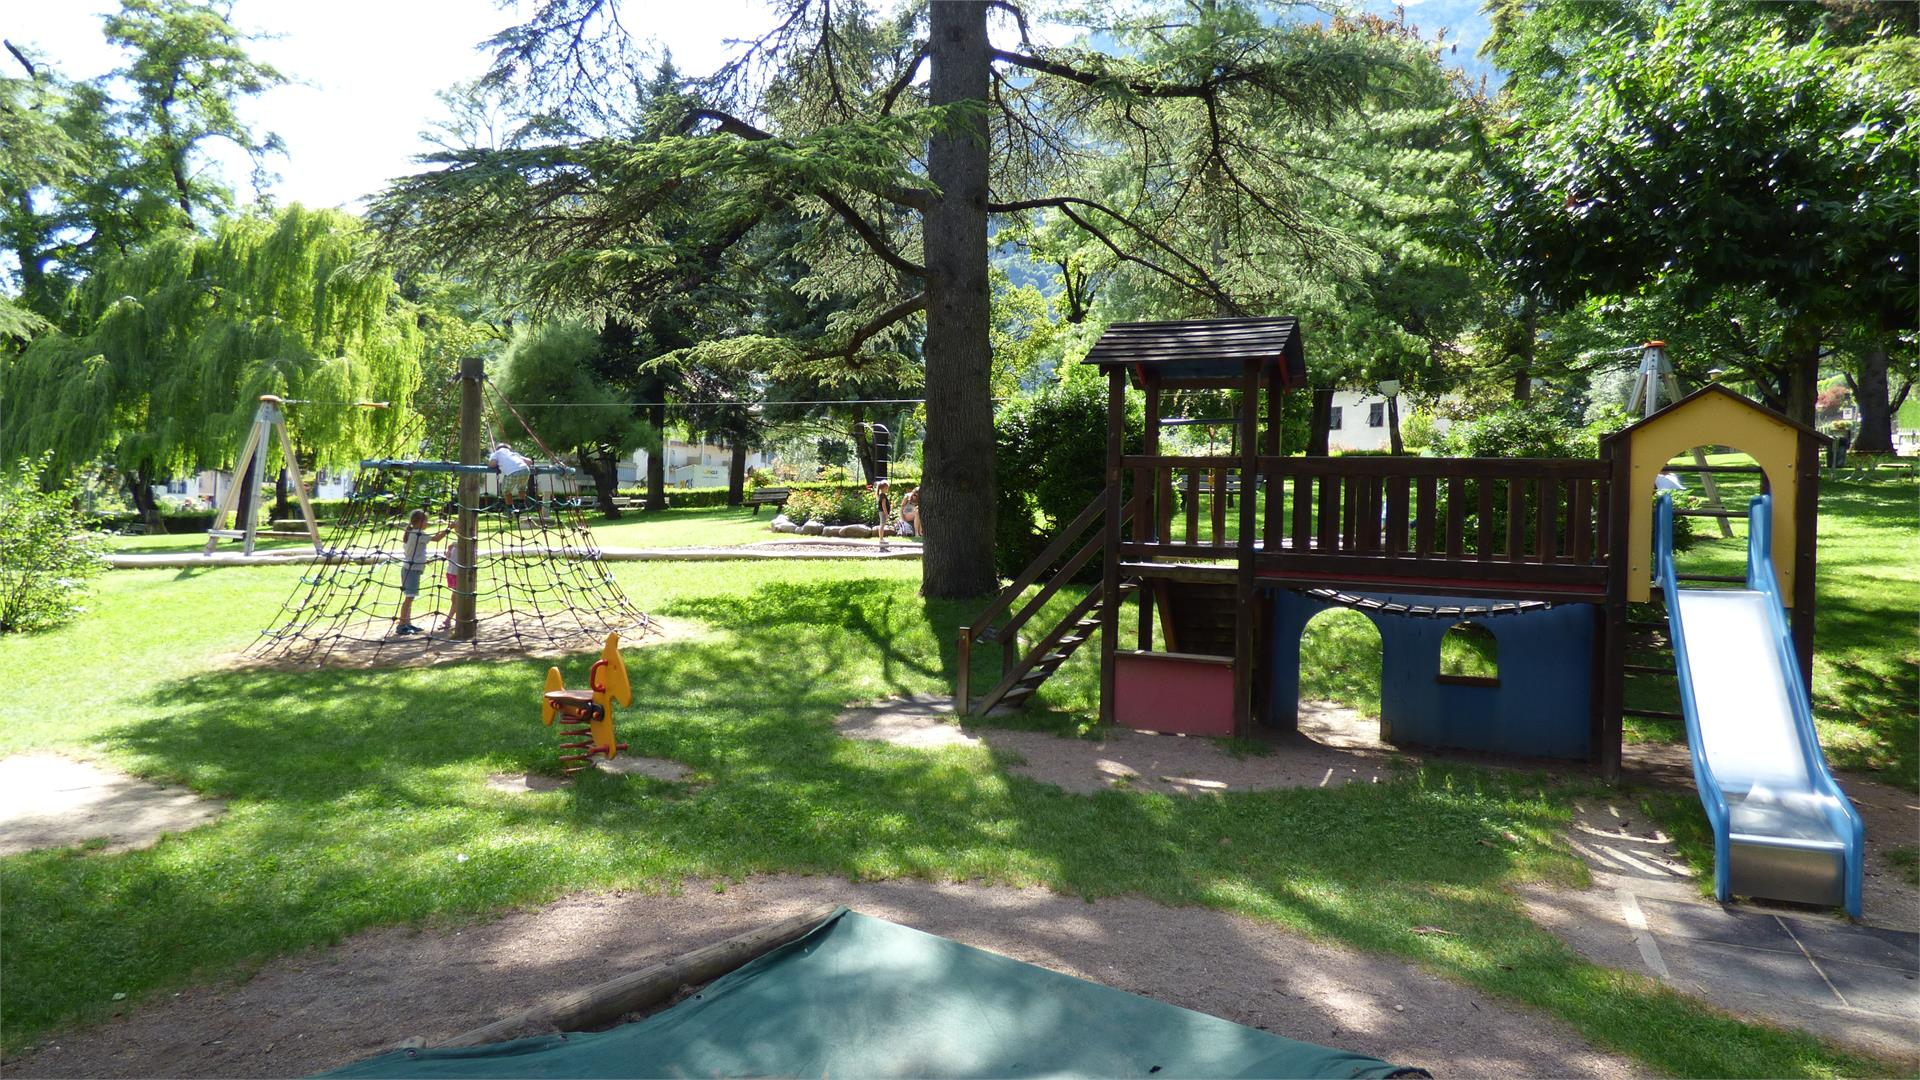 Children's playground next to the Minigolf